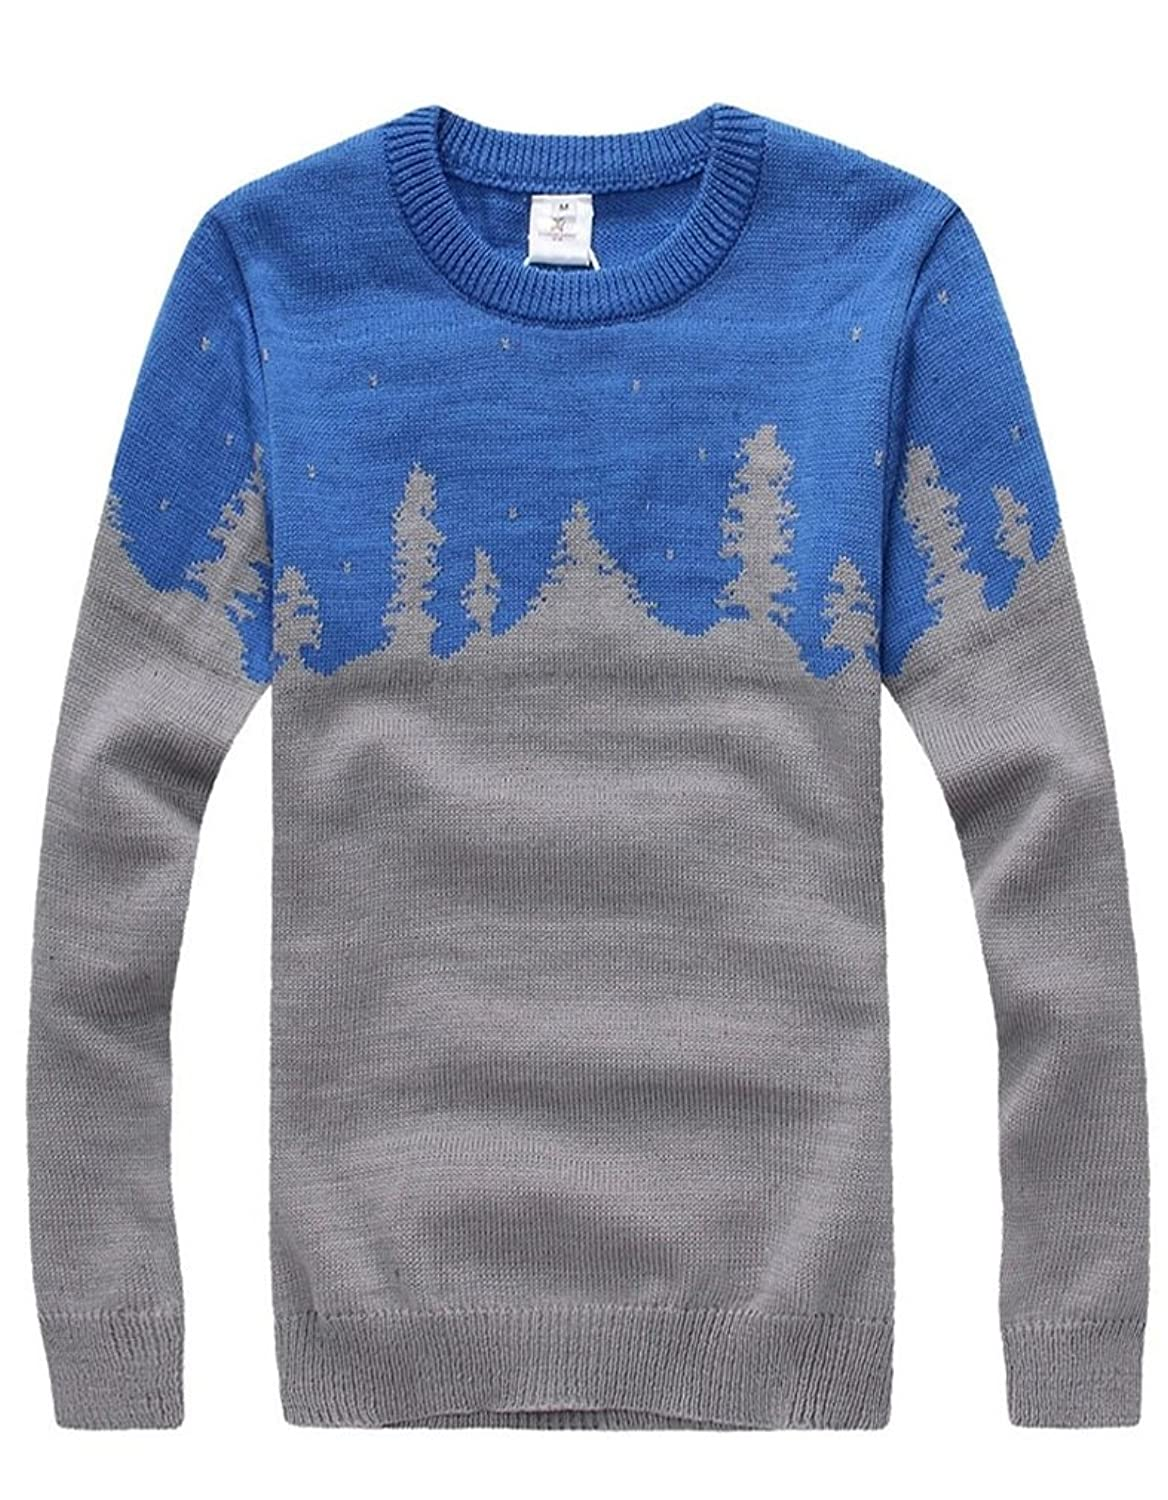 Keral Casual Two Colors Knit Tree Pattern Loose Pullover Sweater M LakeBlueG